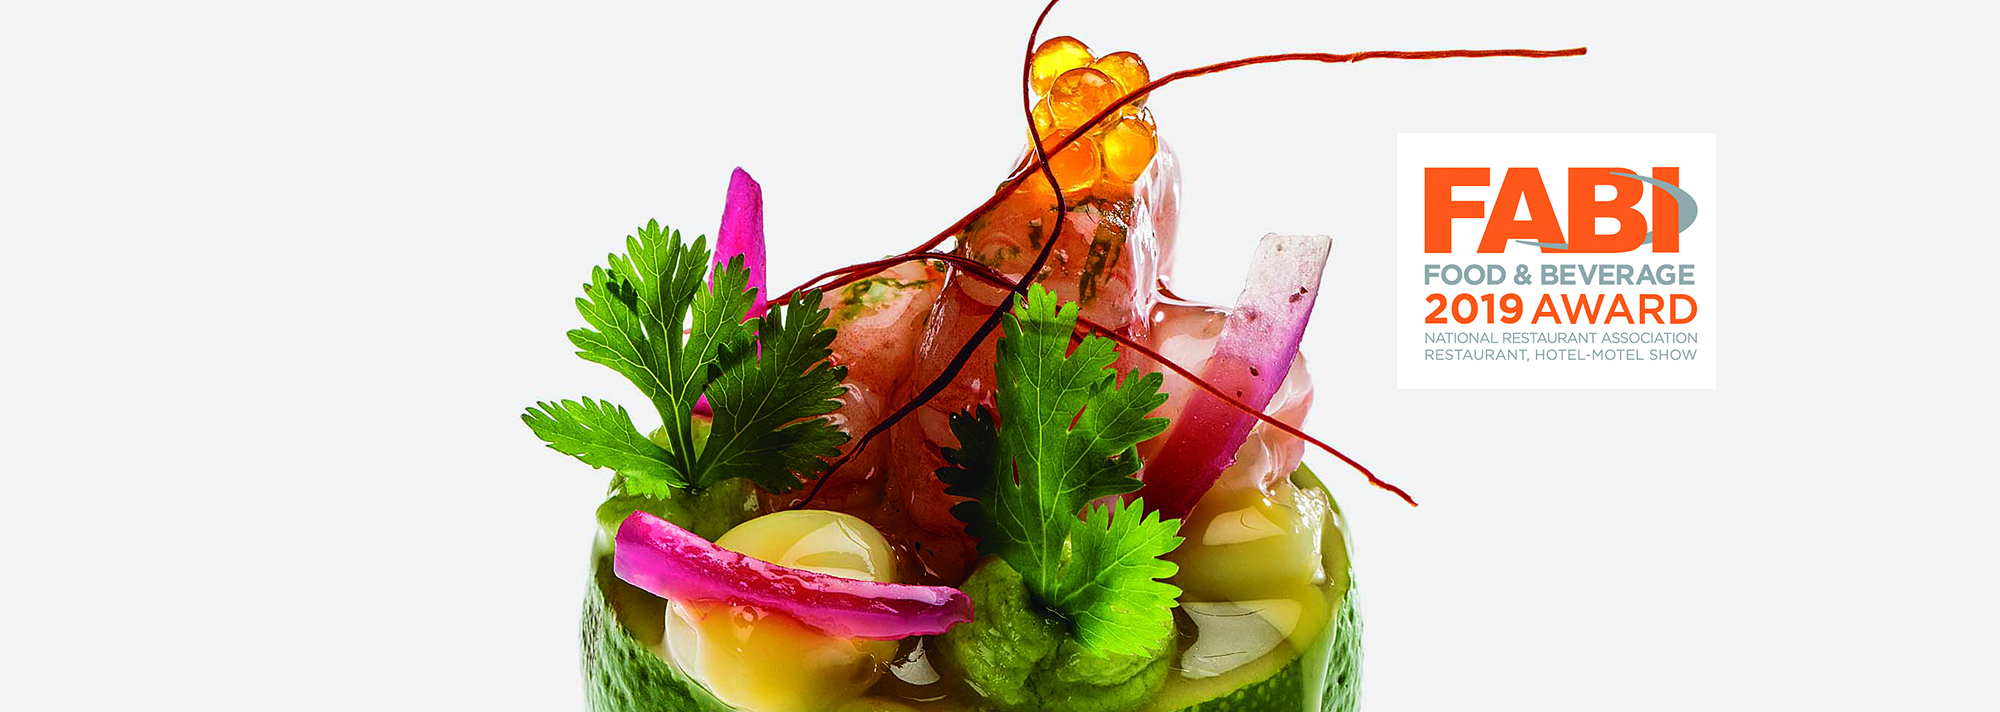 ceviche Low copy-banner FABI.jpg